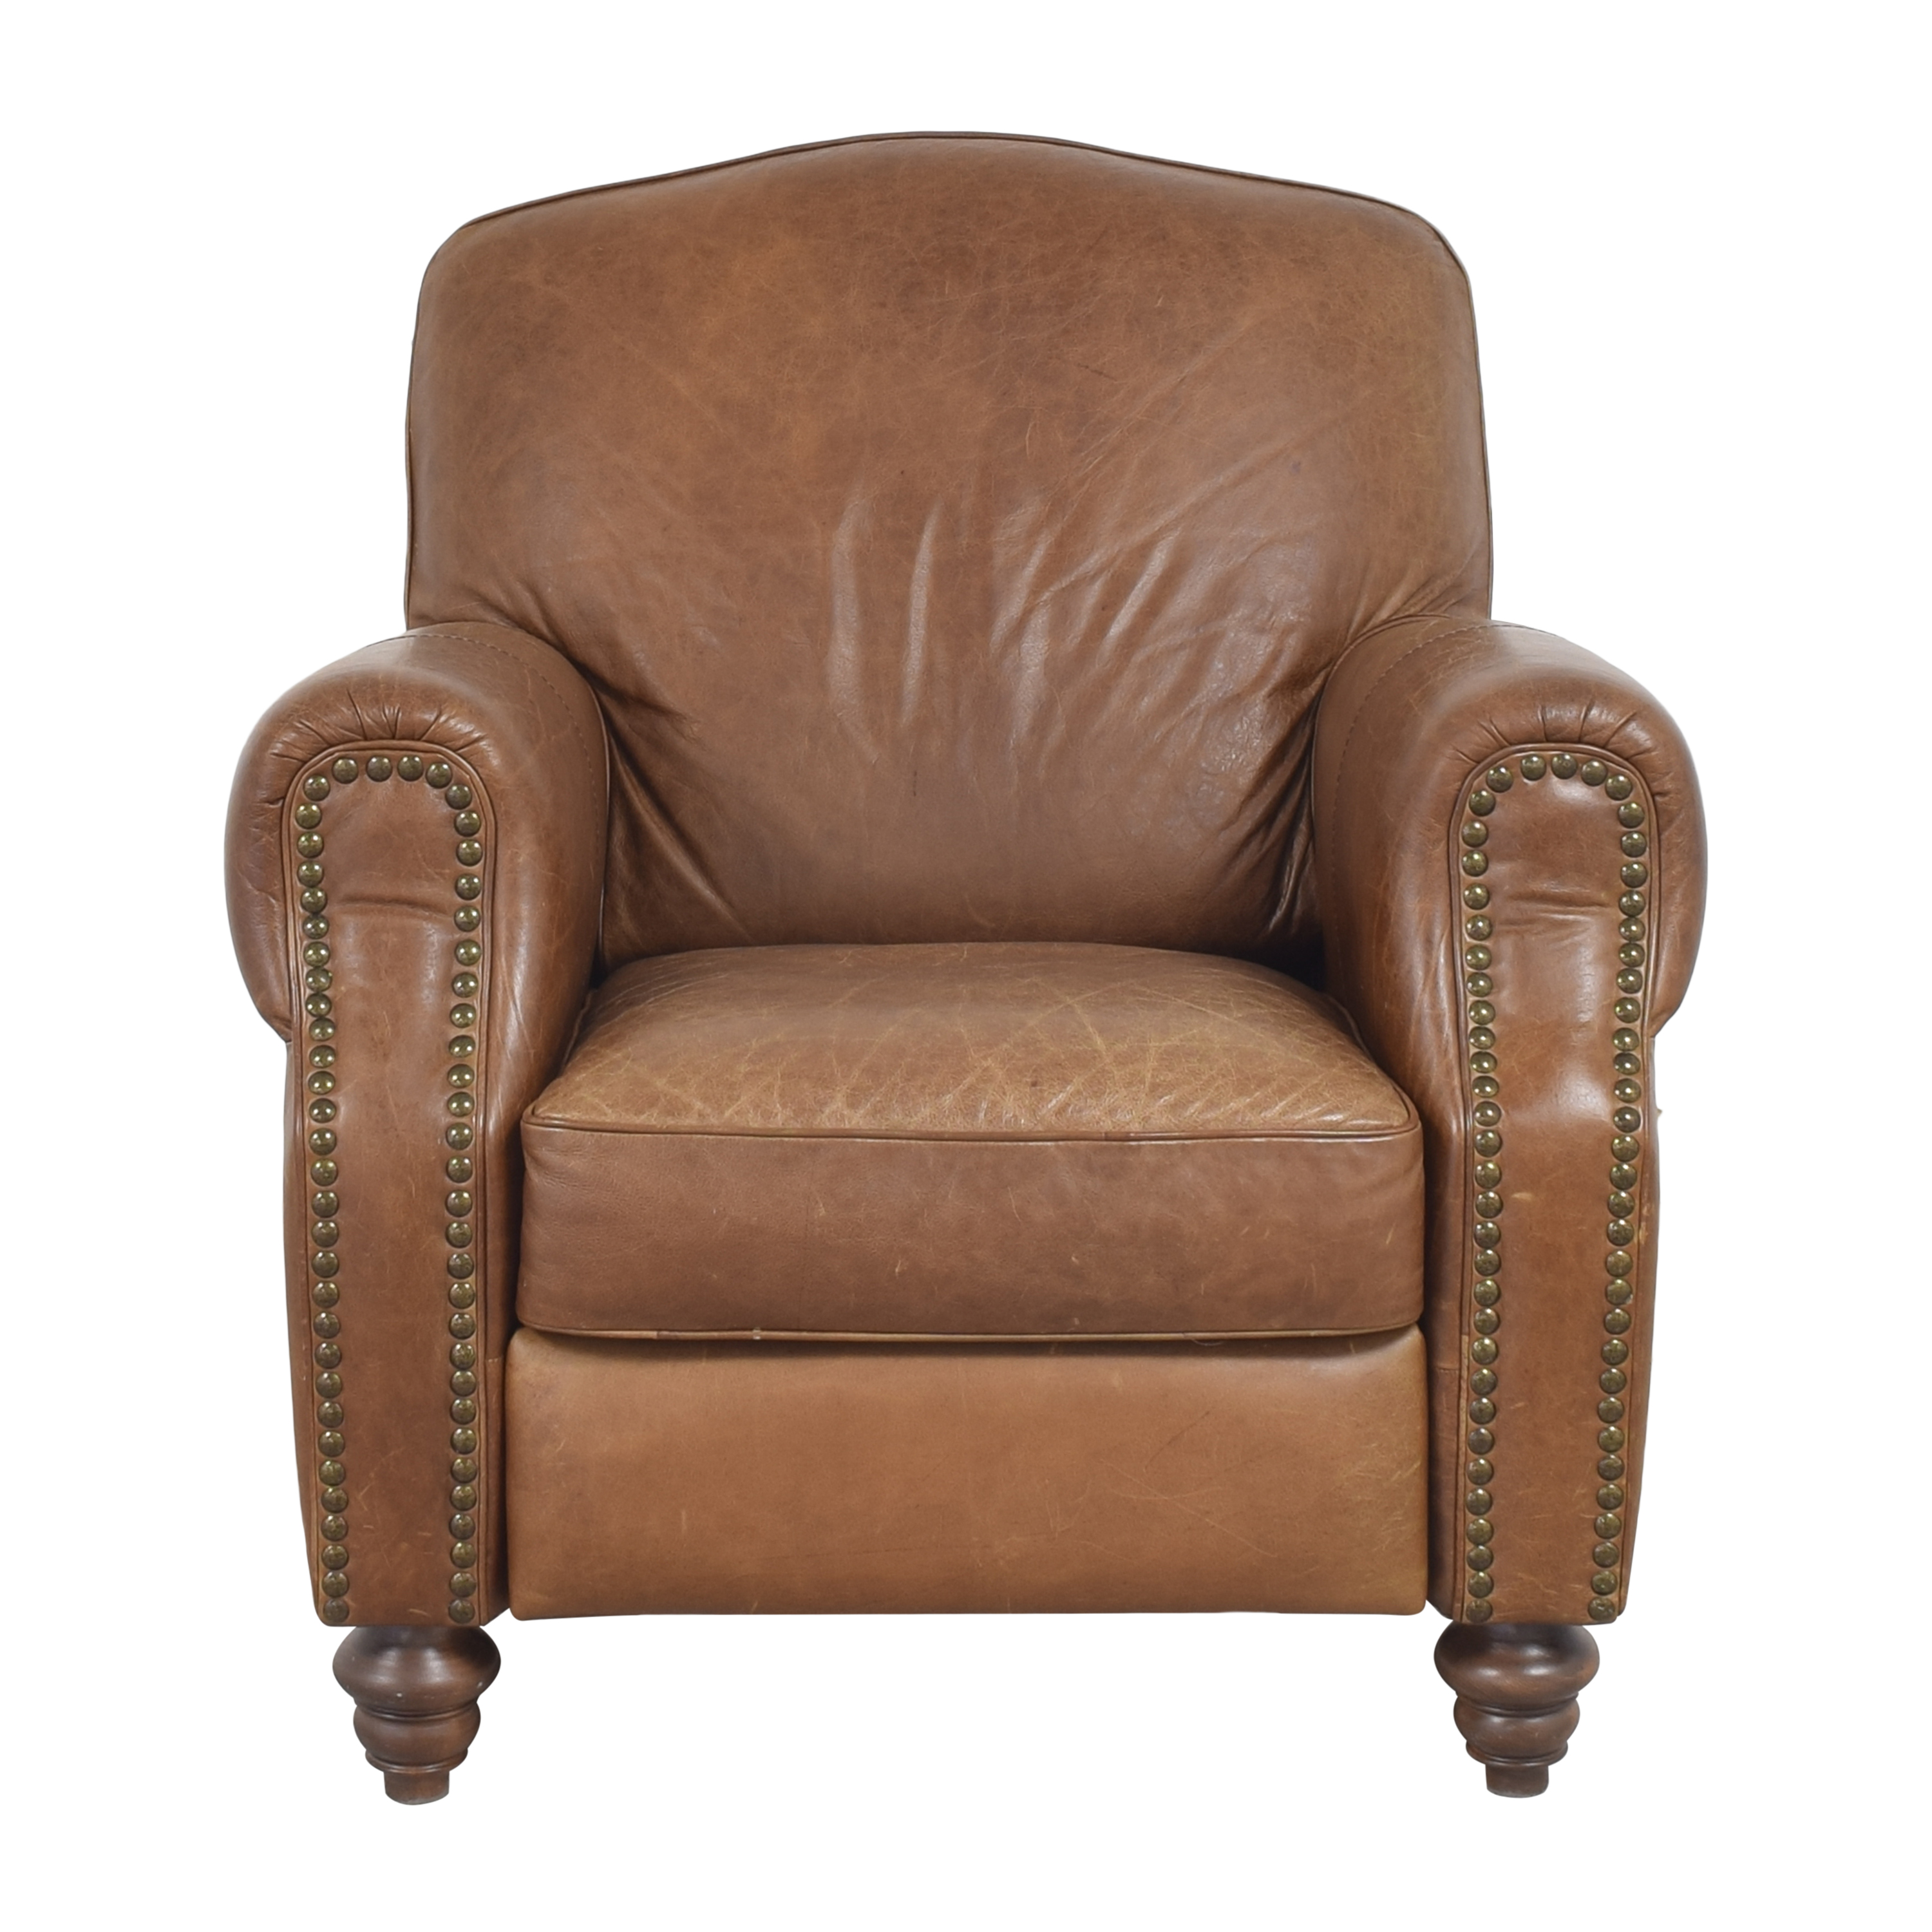 Domain Domain Roll Arm Recliner Chair second hand